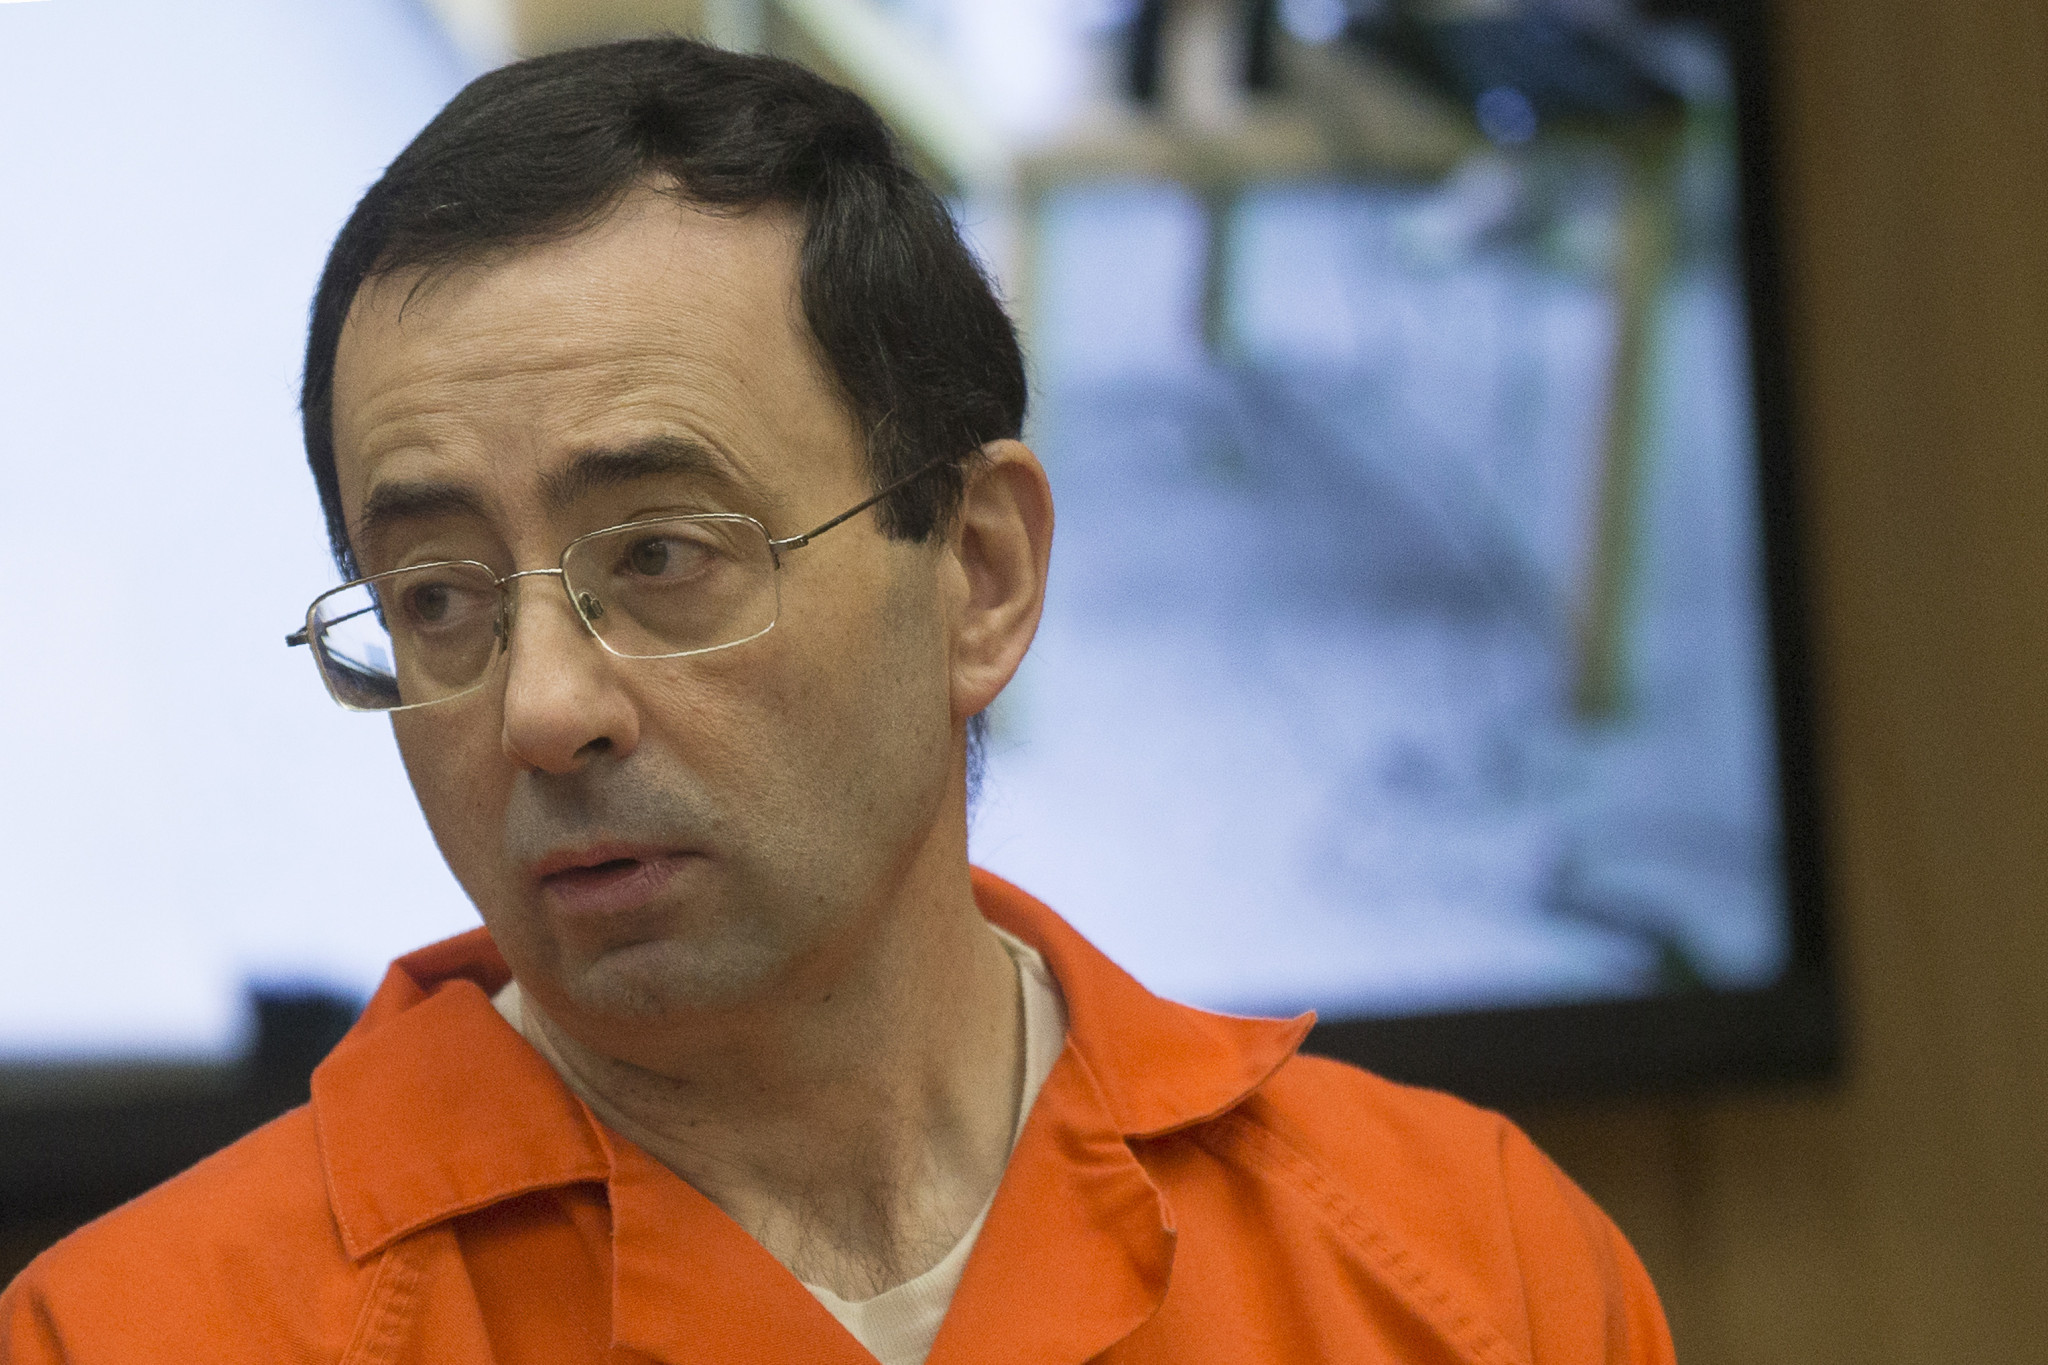 USA Gymnastics' former team doctor Larry Nassar sexually abused more than 300 athletes over two decades ©Getty Images